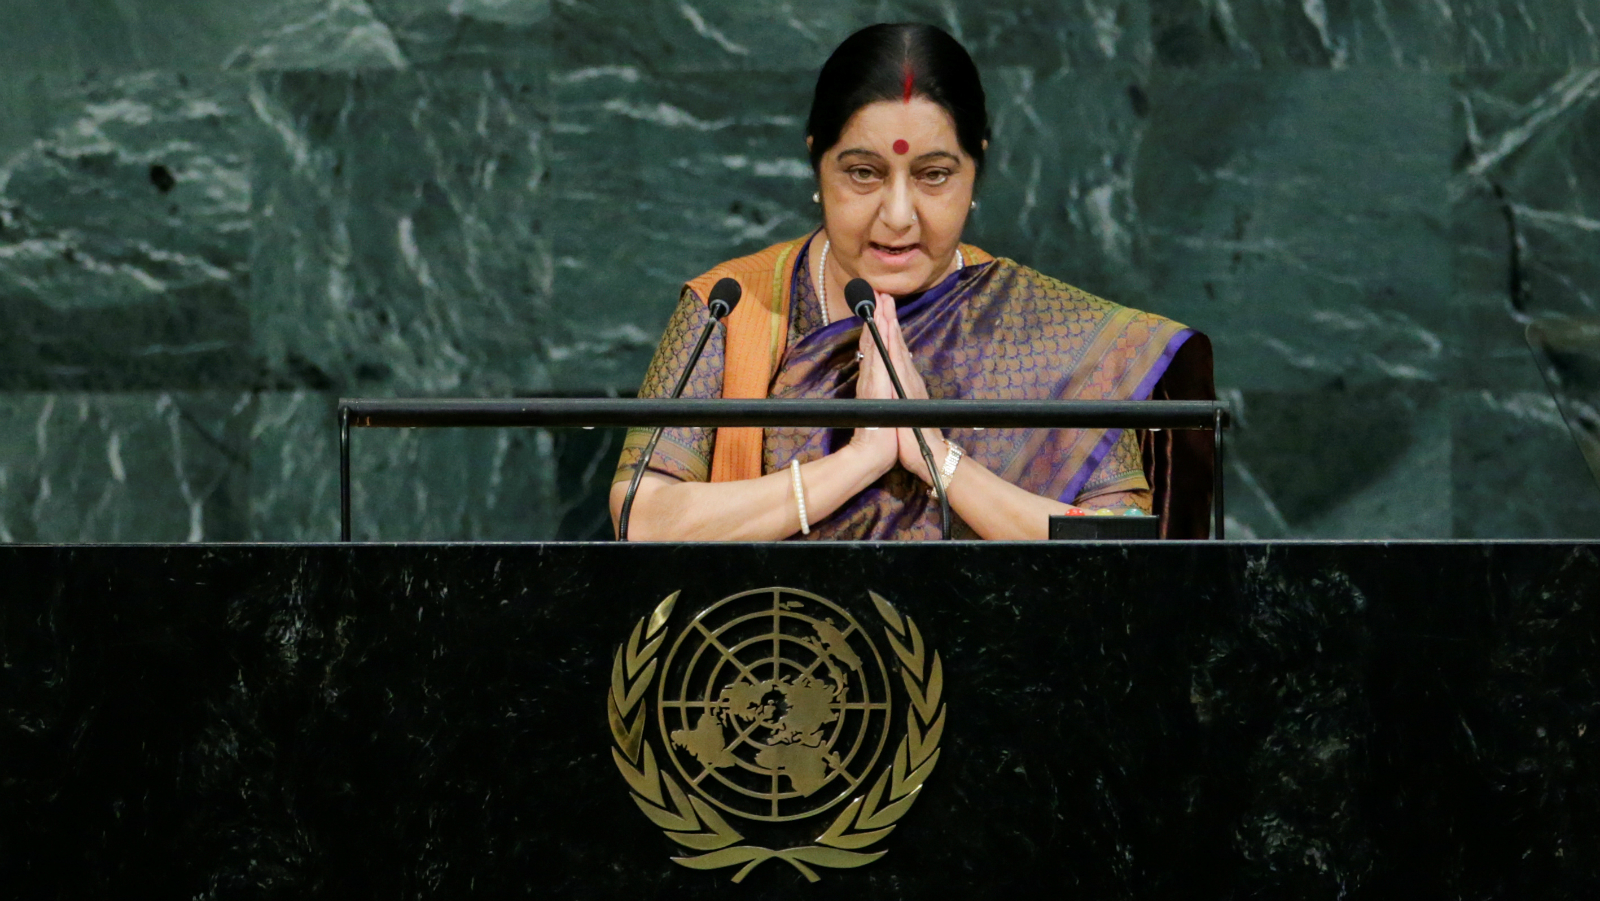 Indian External Affairs Minister Sushma Swaraj addresses the 72nd United Nations General Assembly at U.N. headquarters in New York, U.S., September 23, 2017.